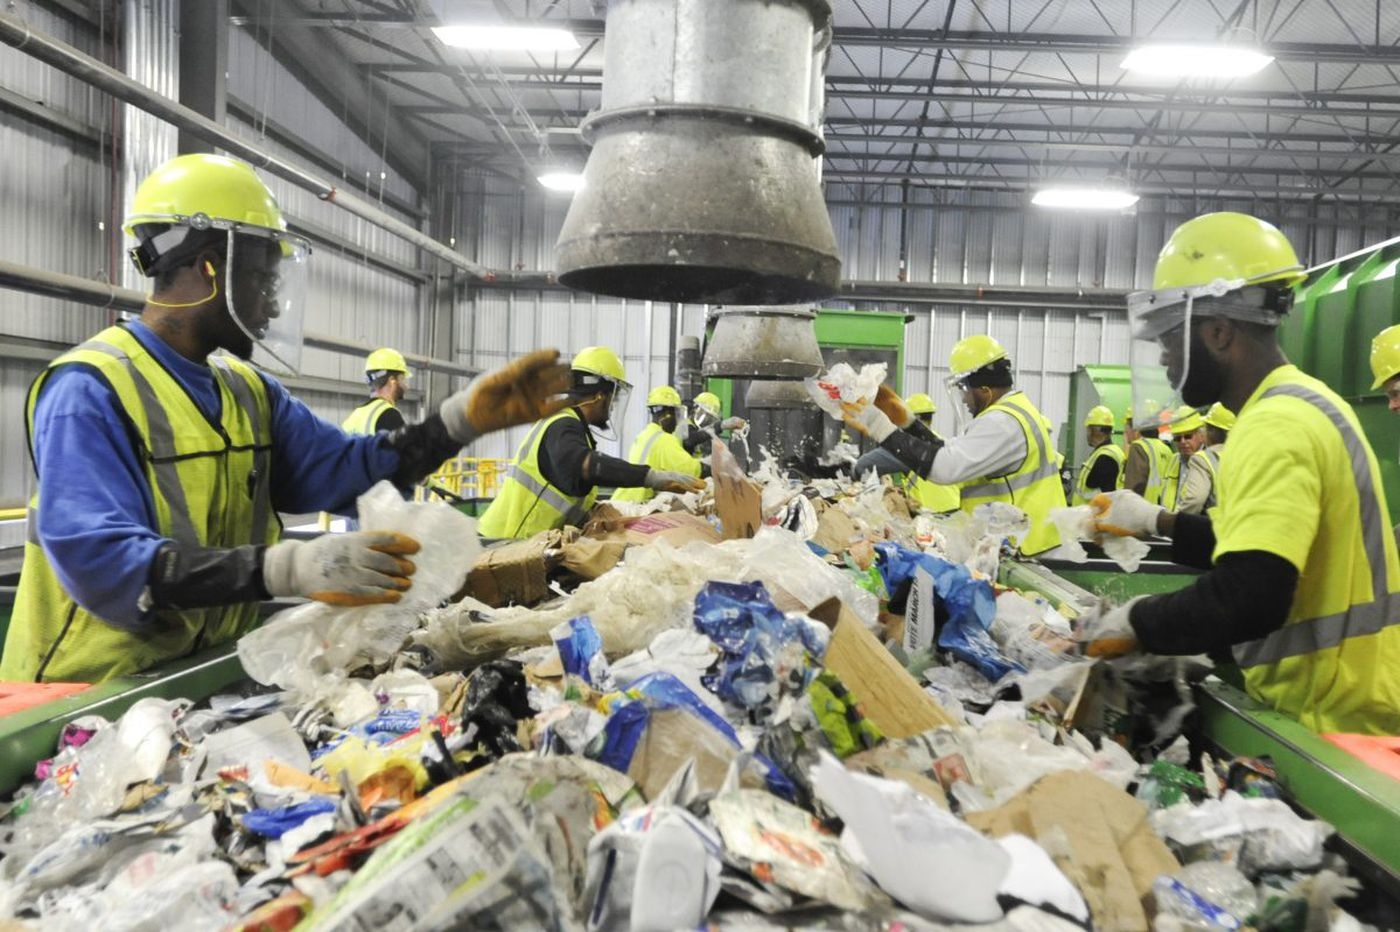 Mayor Kenney: Let's make Philly a zero-waste city by 2035